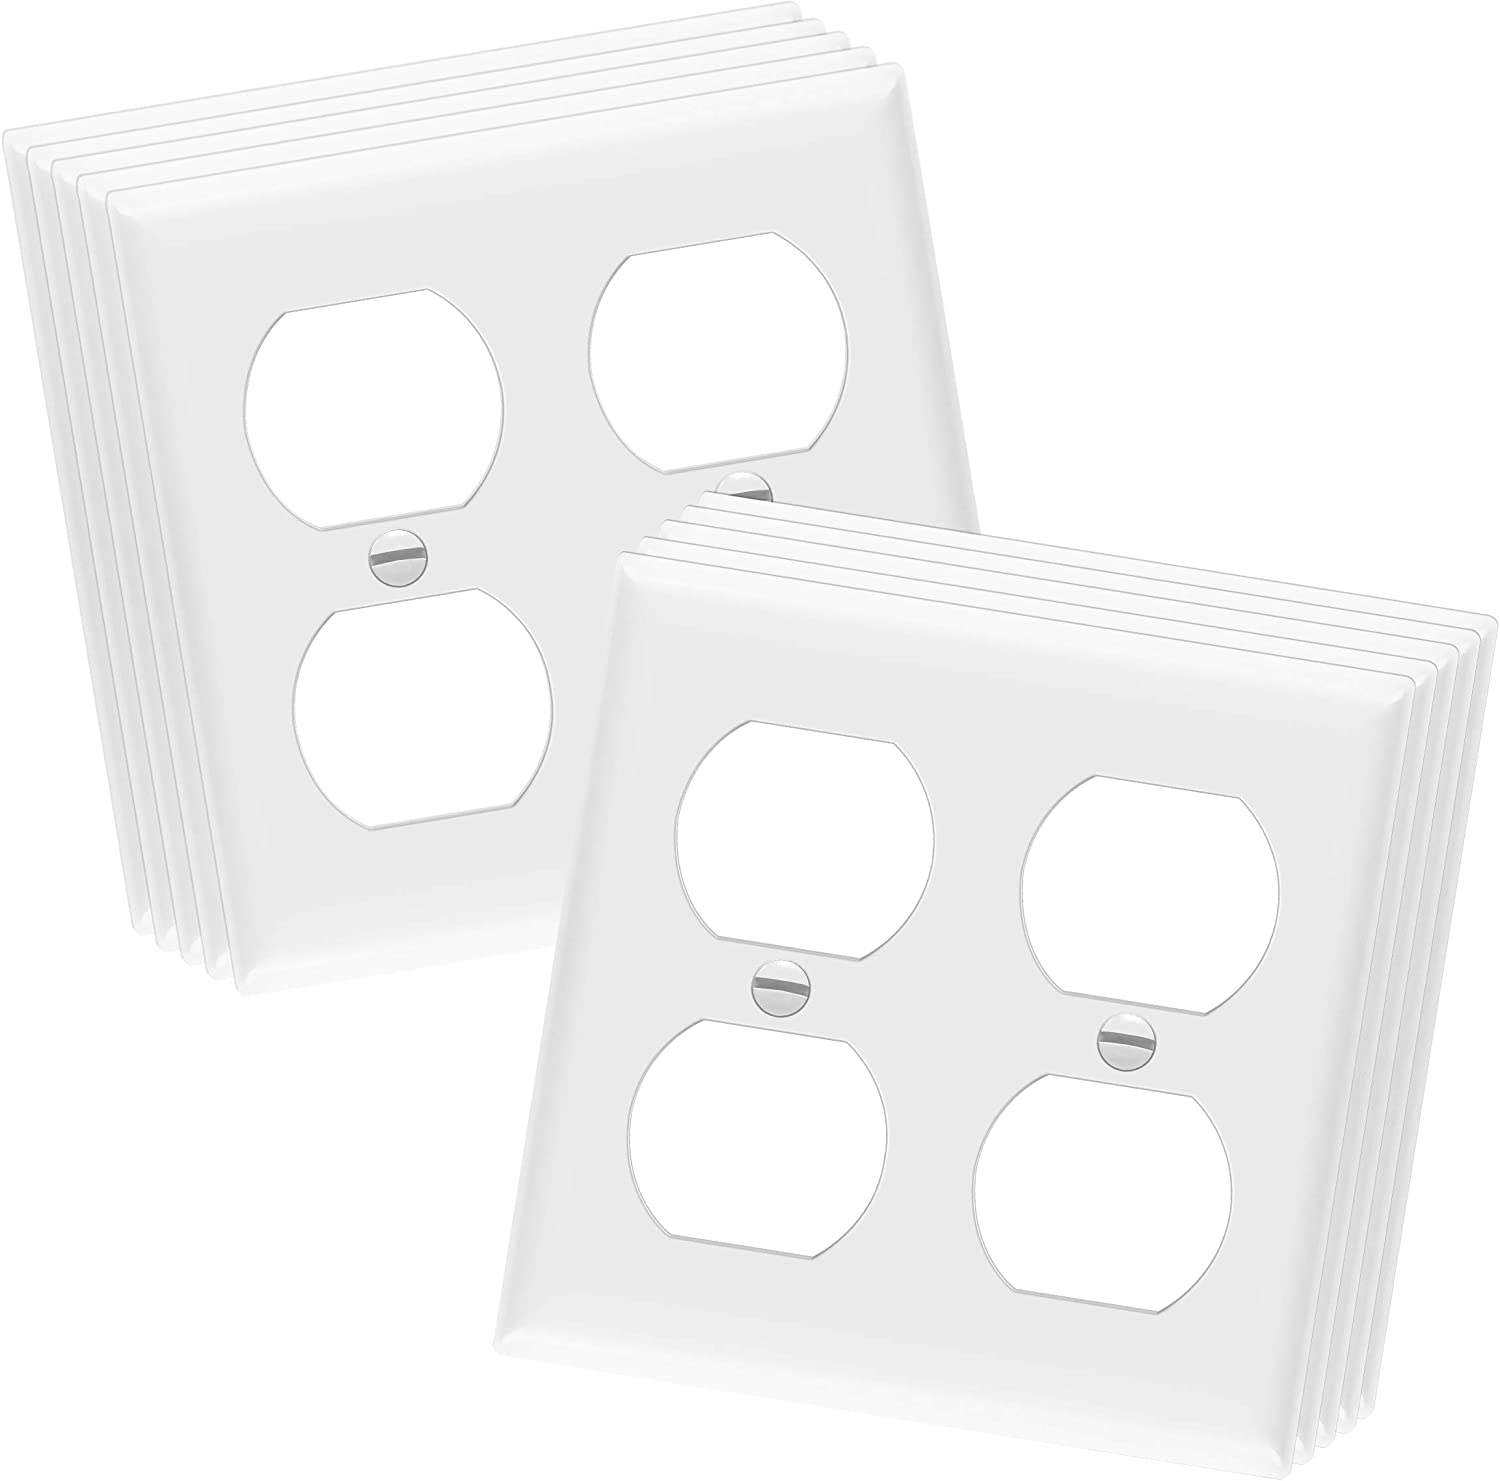 Enerlites 8822 W 2 Gang Duplex Outlet Wall Plate Standard Size Unbreakable Polycarbonate White 10 Pack